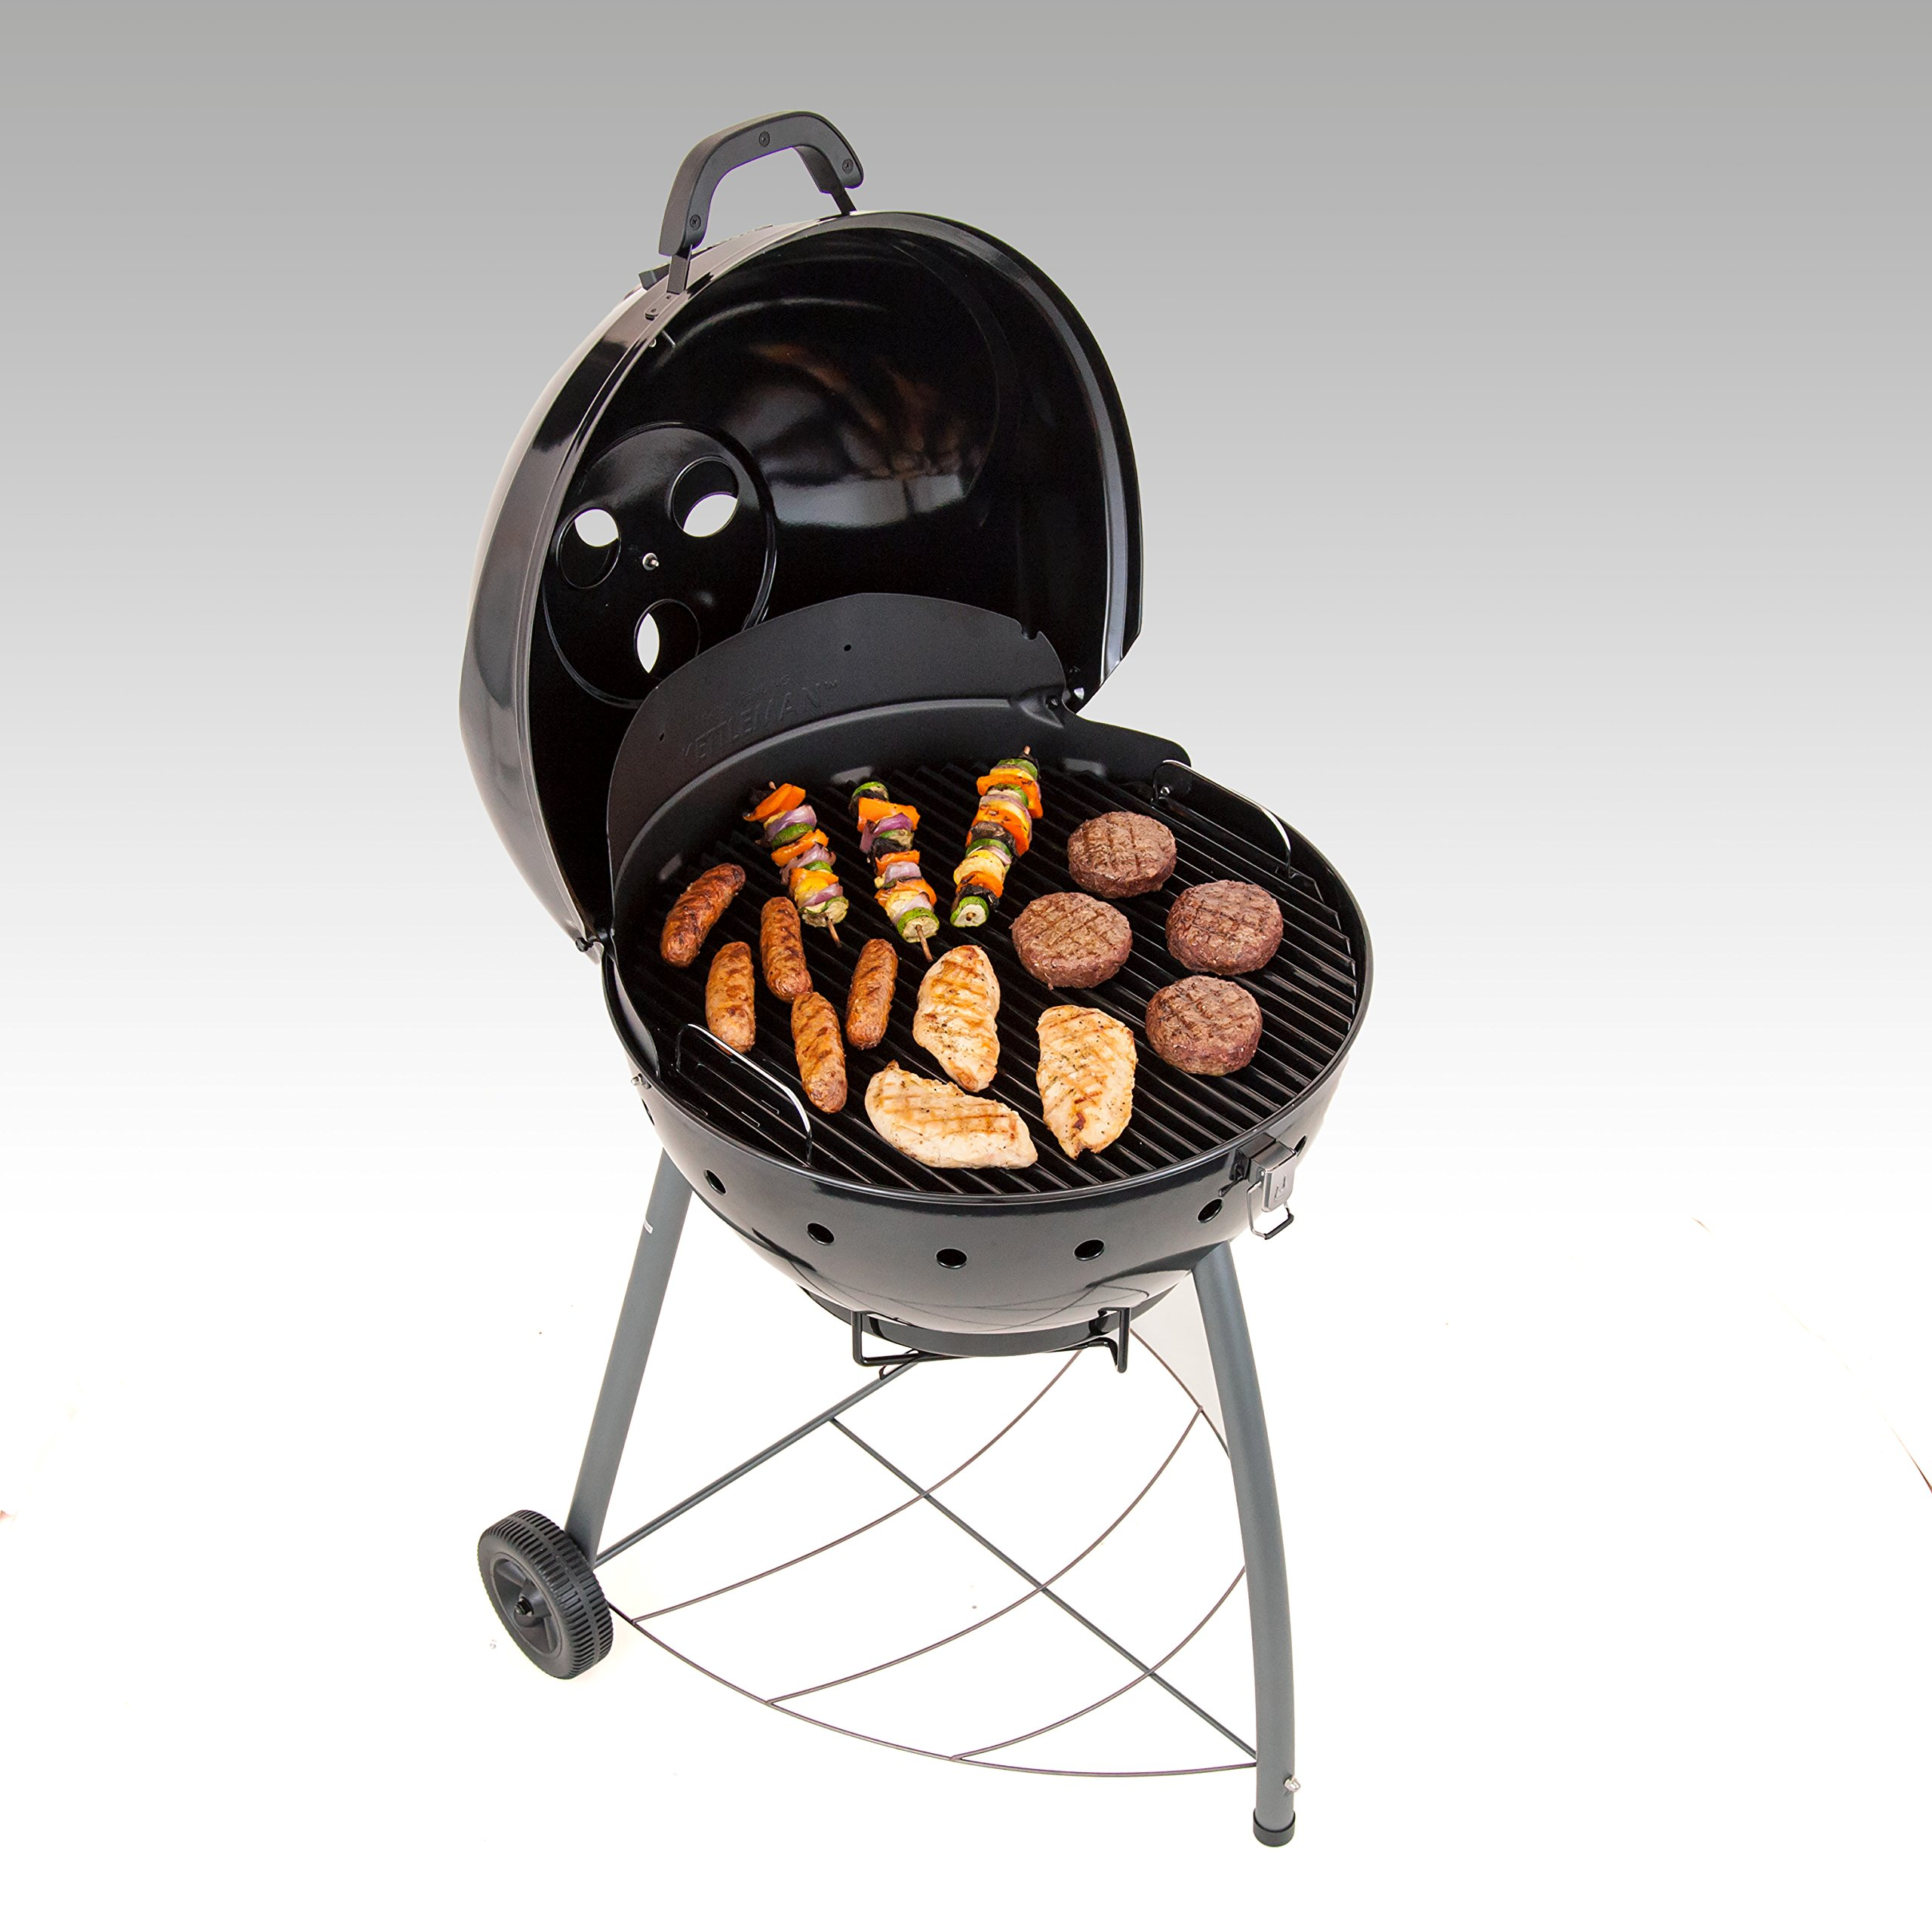 Char-Broil TRU-Infrared Kettleman Charcoal Grill, 22.5 Inch by Char-Broil (Image #3)